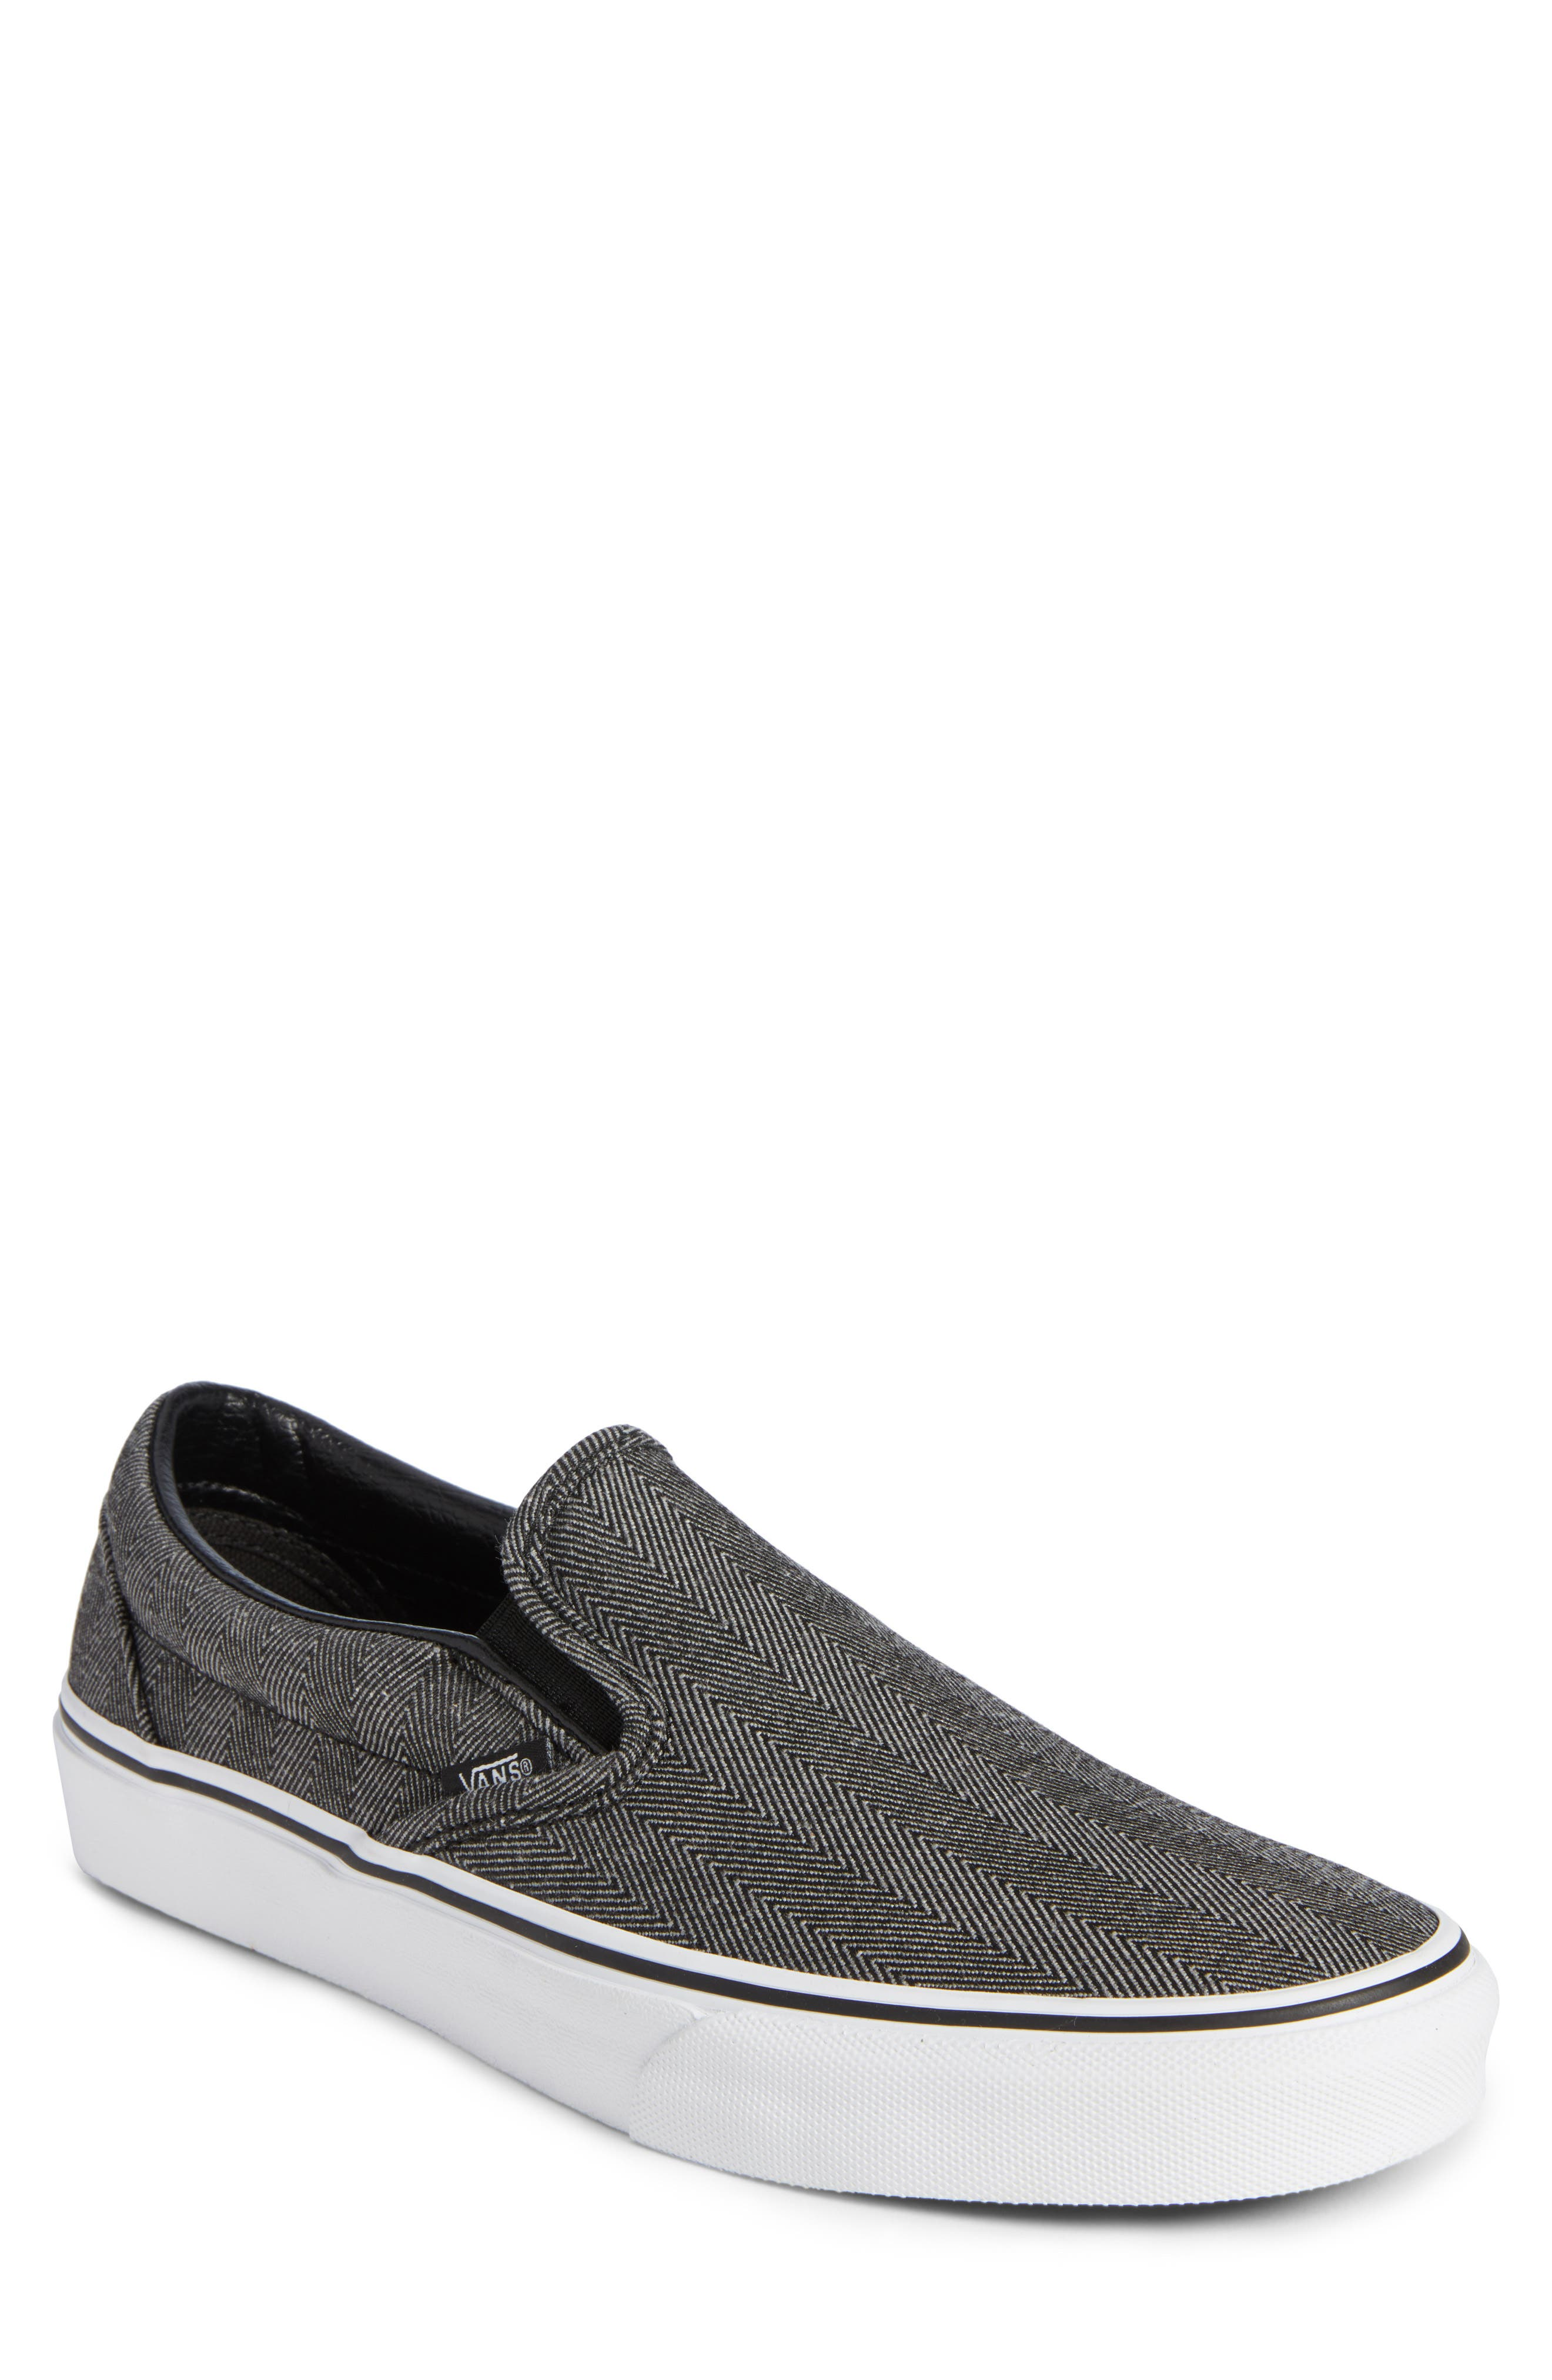 'Classic' Slip-On Sneaker,                         Main,                         color, 019